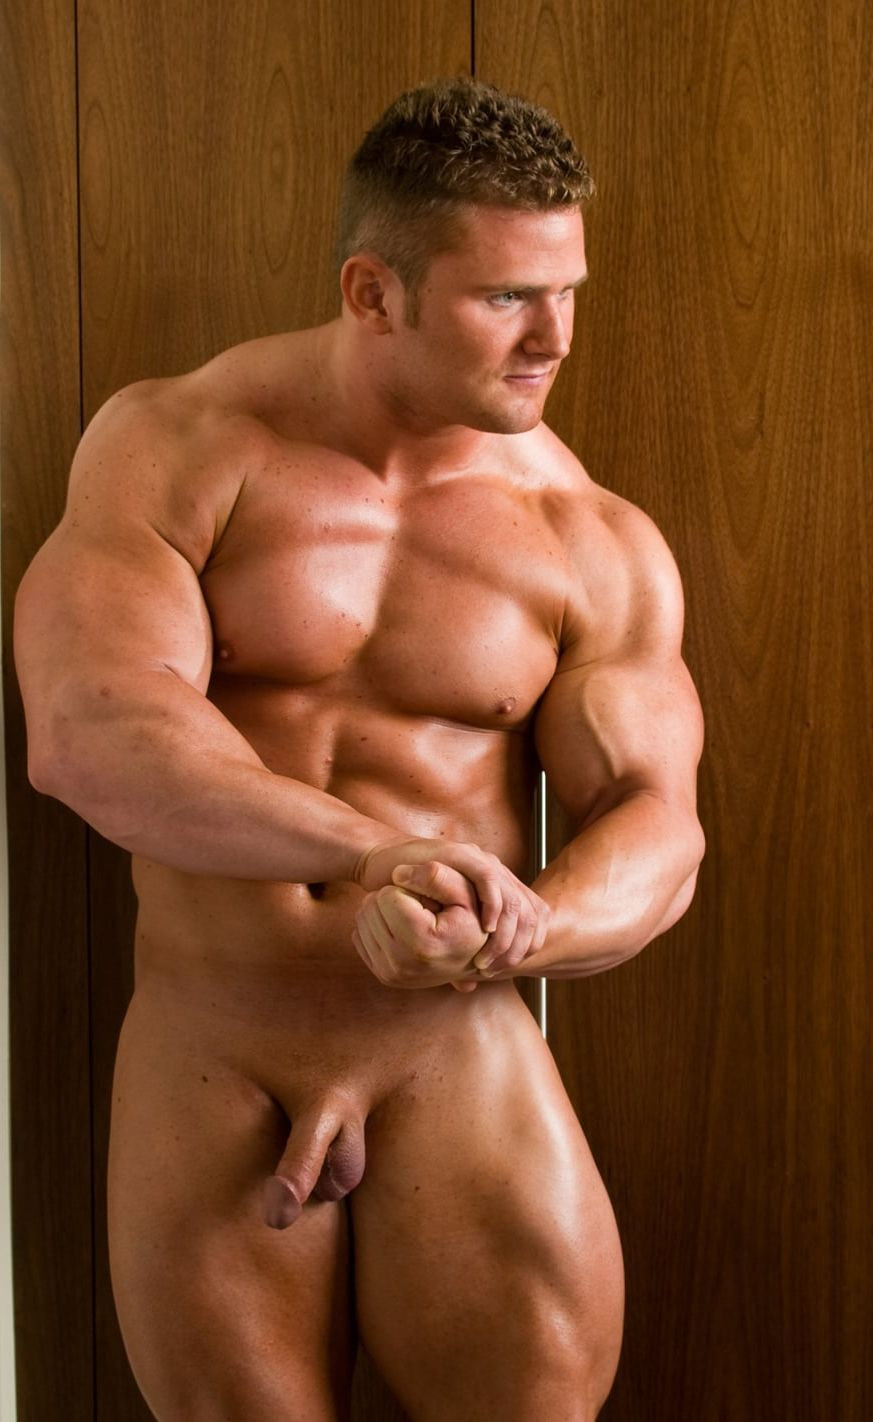 Gallery amateur body building